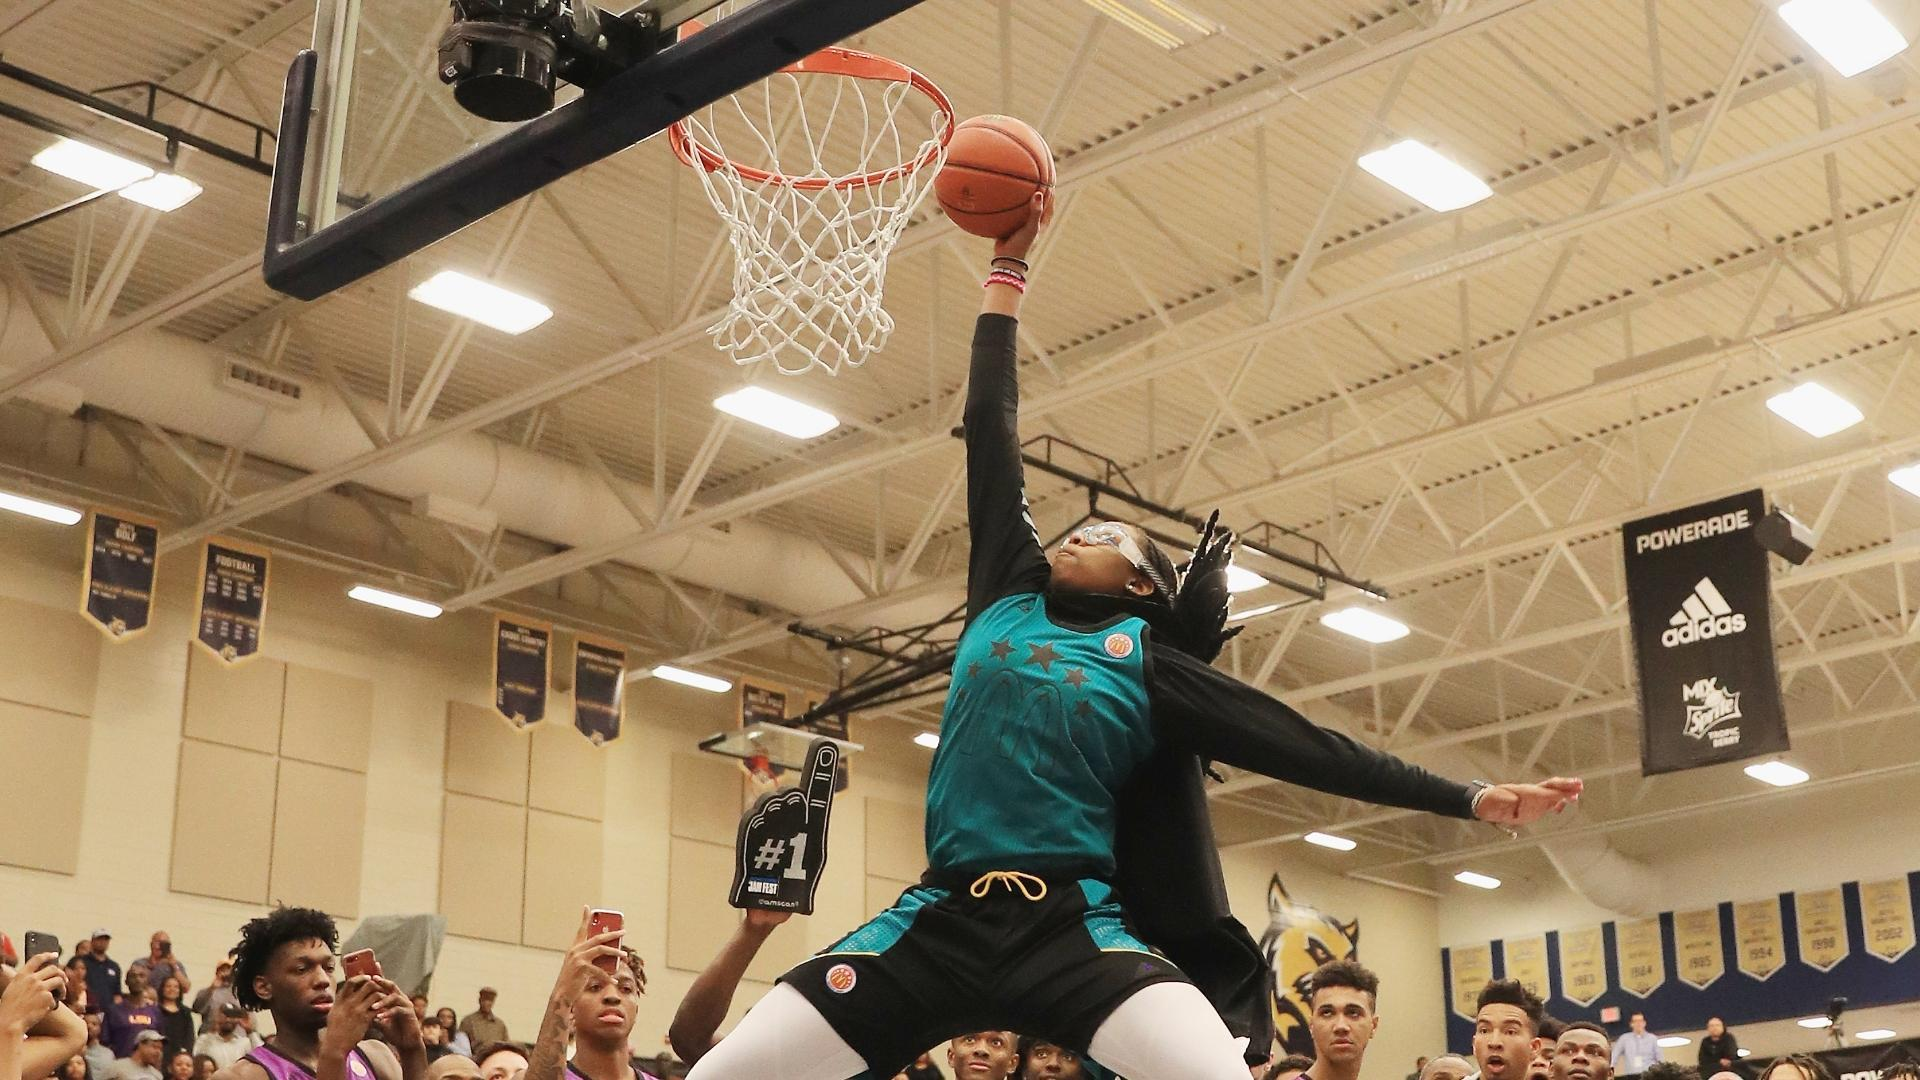 Belibi dazzles with four perfect dunks at Powerade Jam Fest